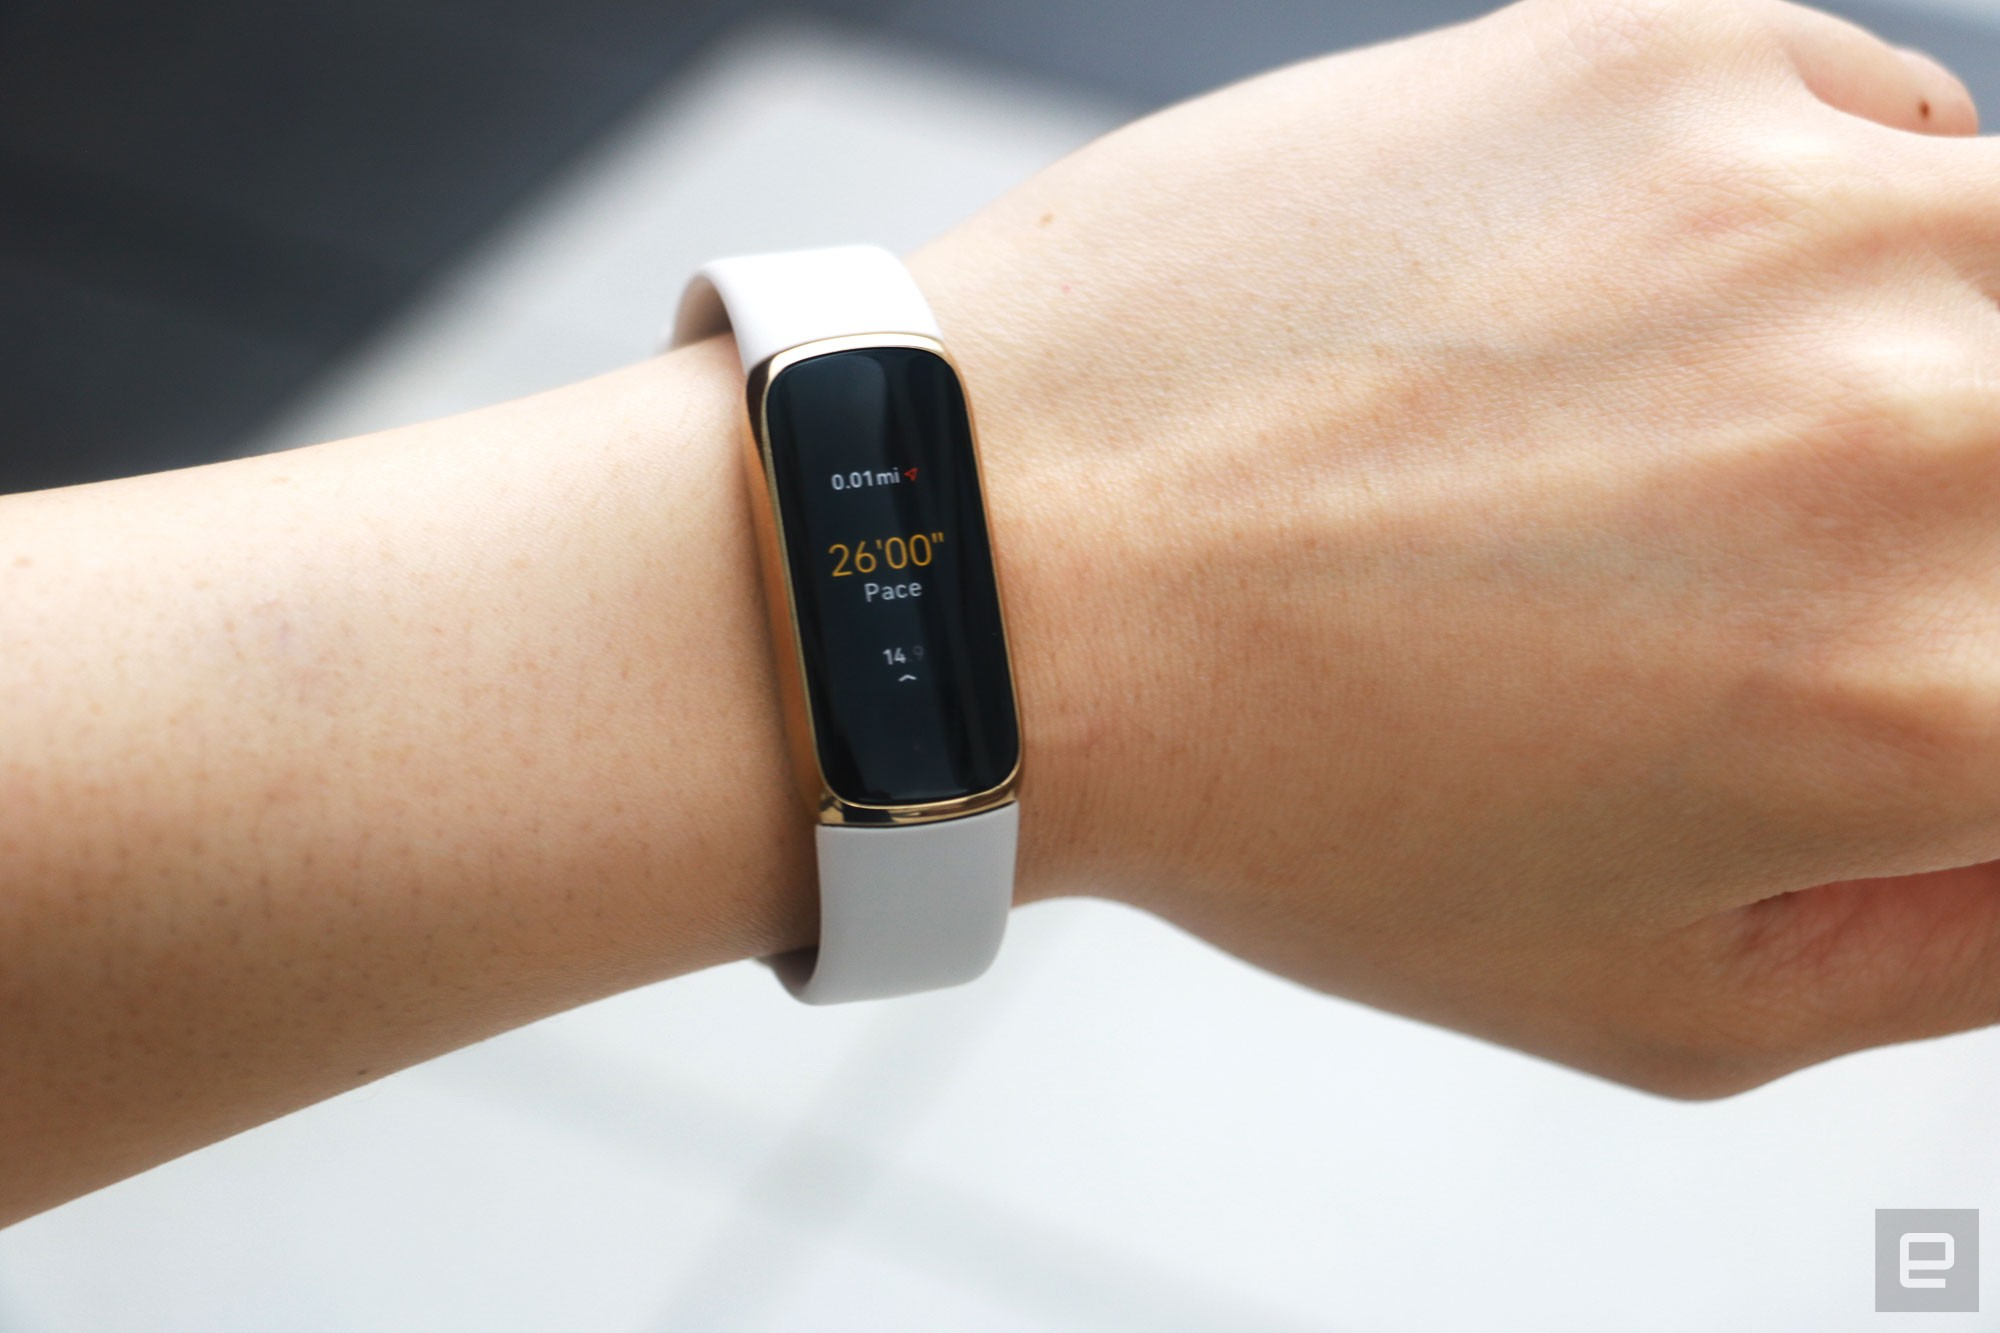 <p>The Fitbit Luxe with a light pink silicone band on a wrist against a concrete gray background. The screen shows a run being tracked with a pace of 26:00 and 0.01 miles traveled.</p>